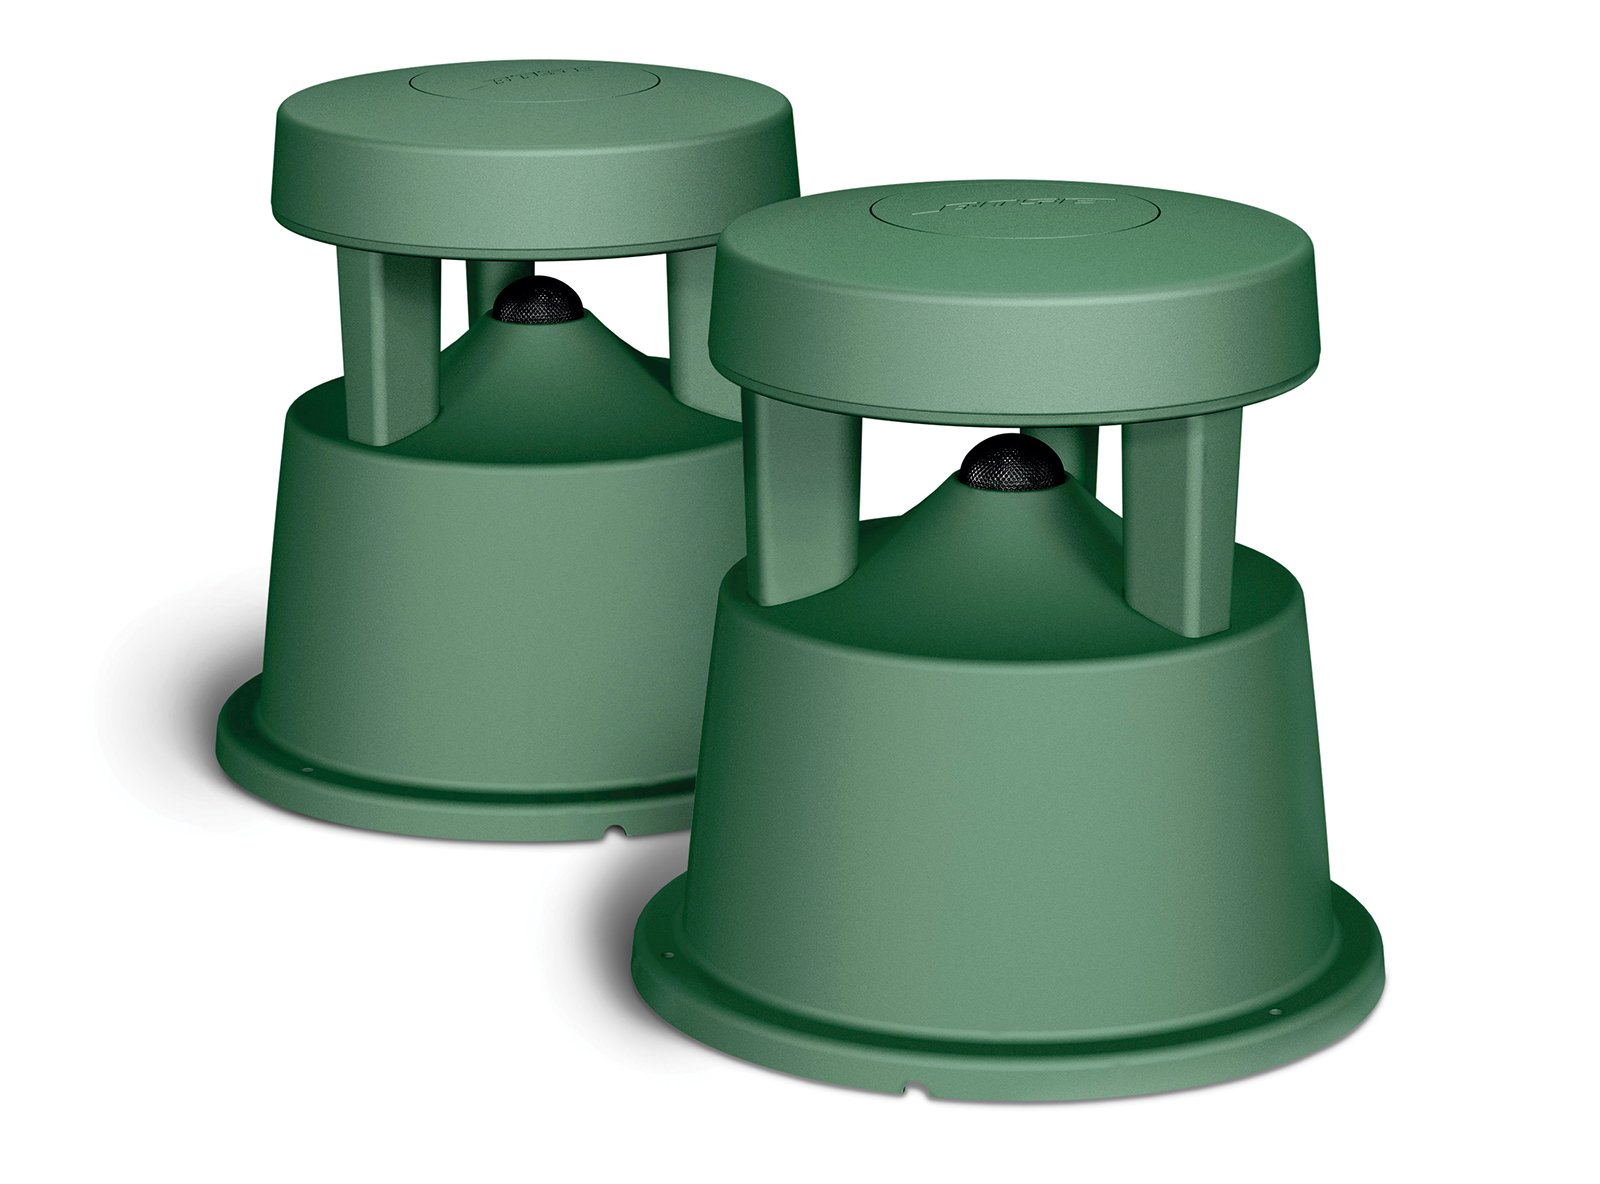 Bose Free Space 51 Outdoor In-Ground Speakers (Green) by Bose